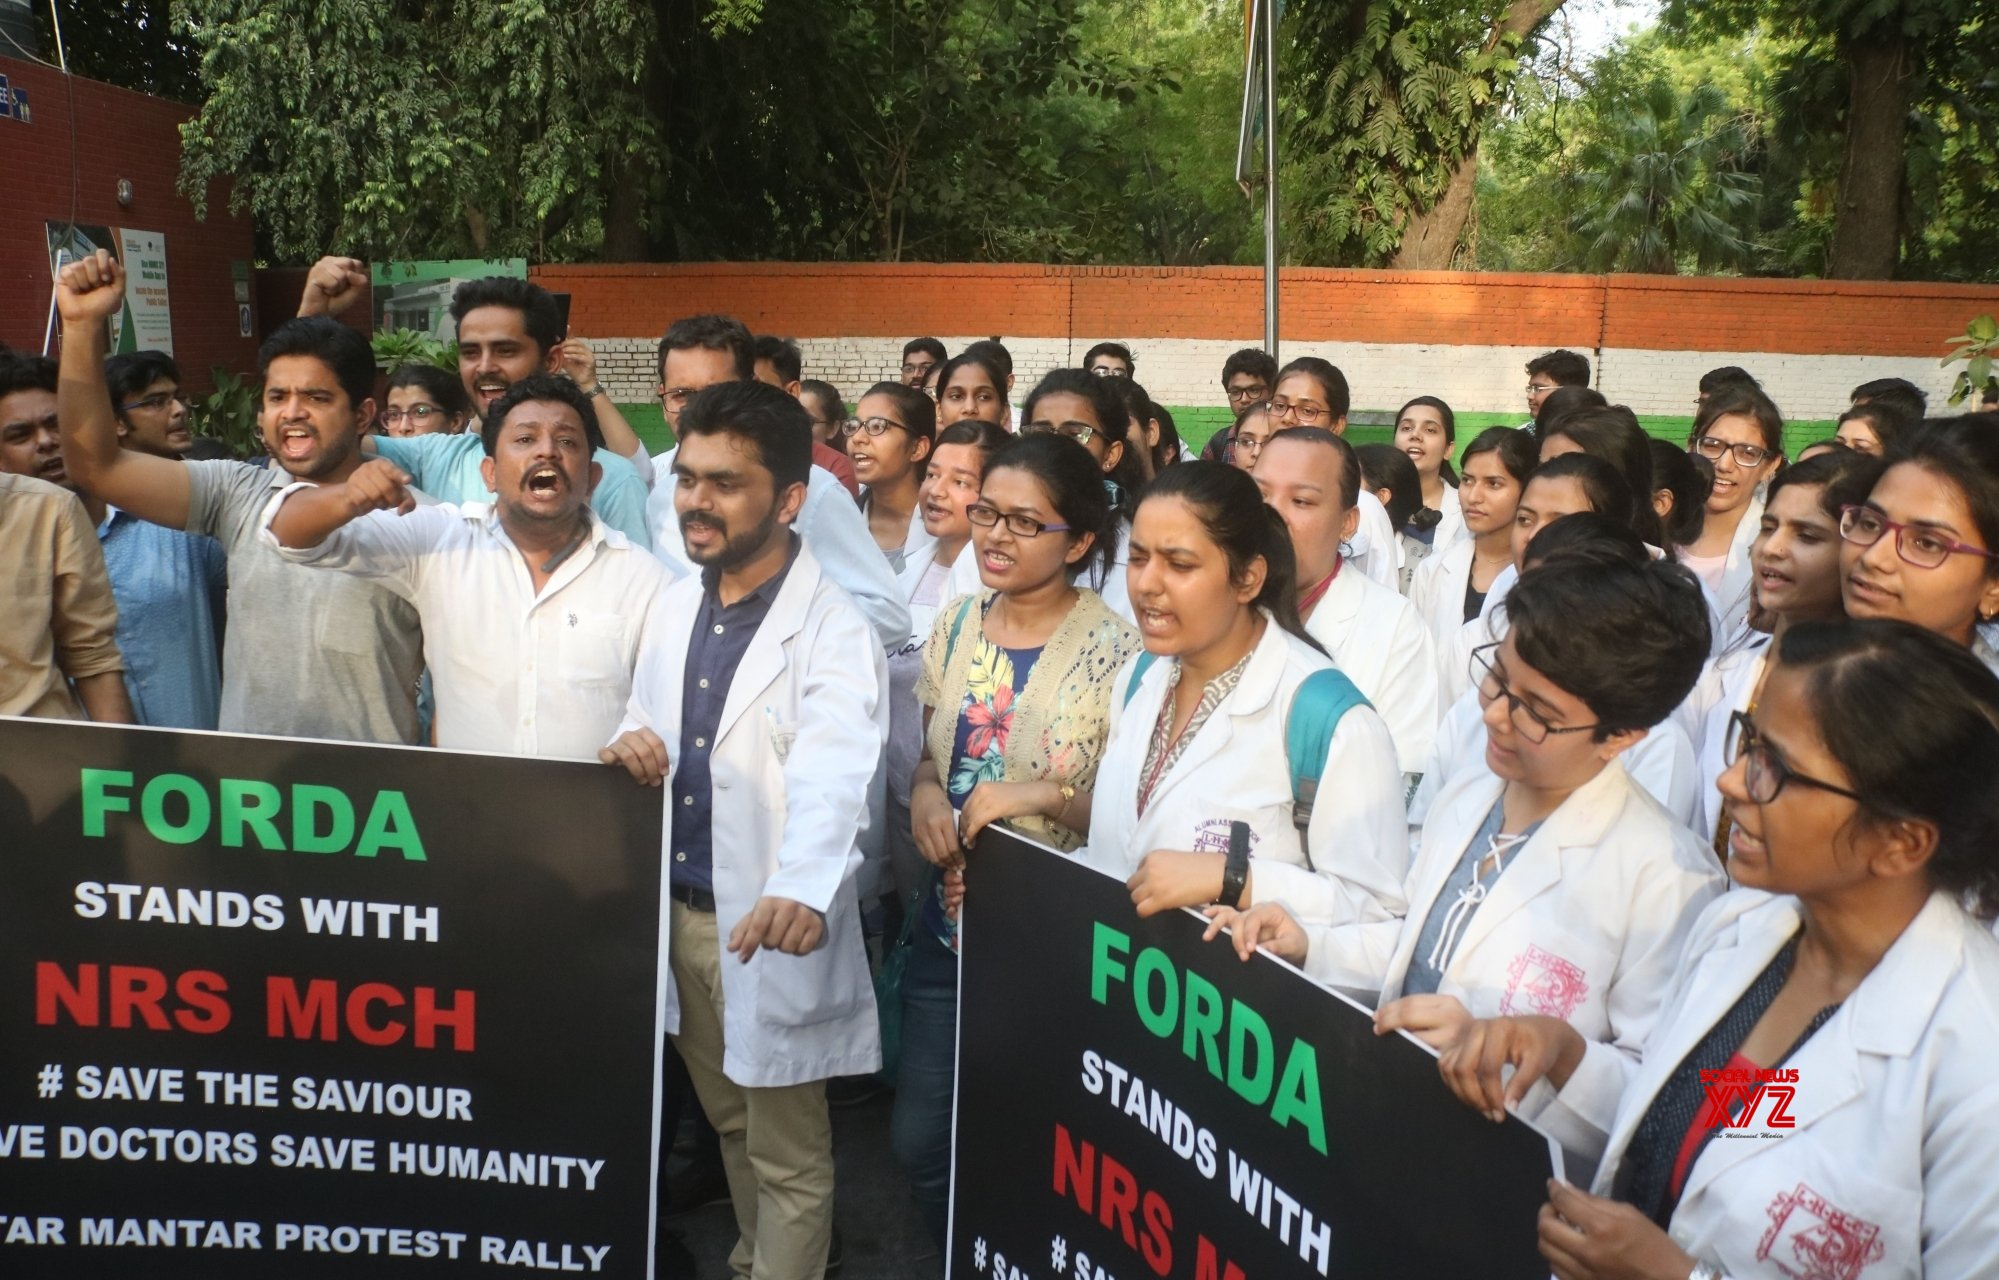 Delhi doctors 'cease work' in solidarity with Bengal brethren